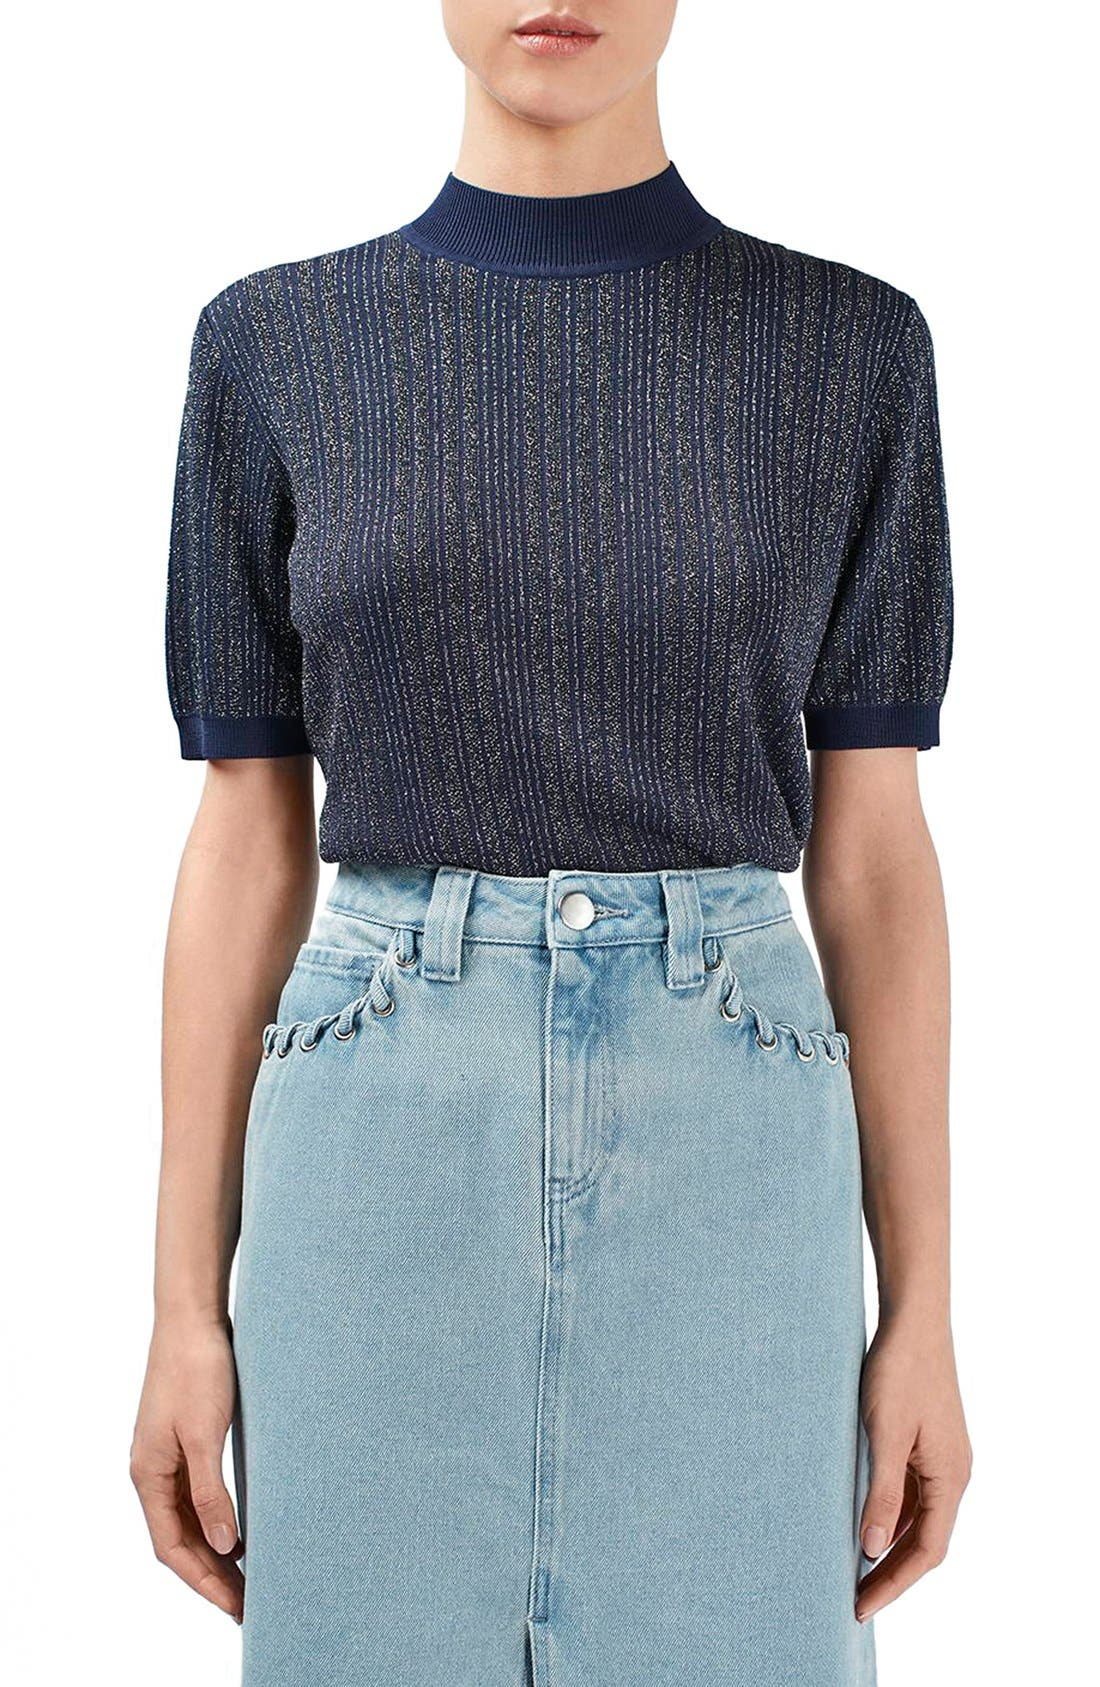 Alternate Image 1 Selected - Topshop Unique 'Lamont' Short Sleeve Metallic Stripe Sweater